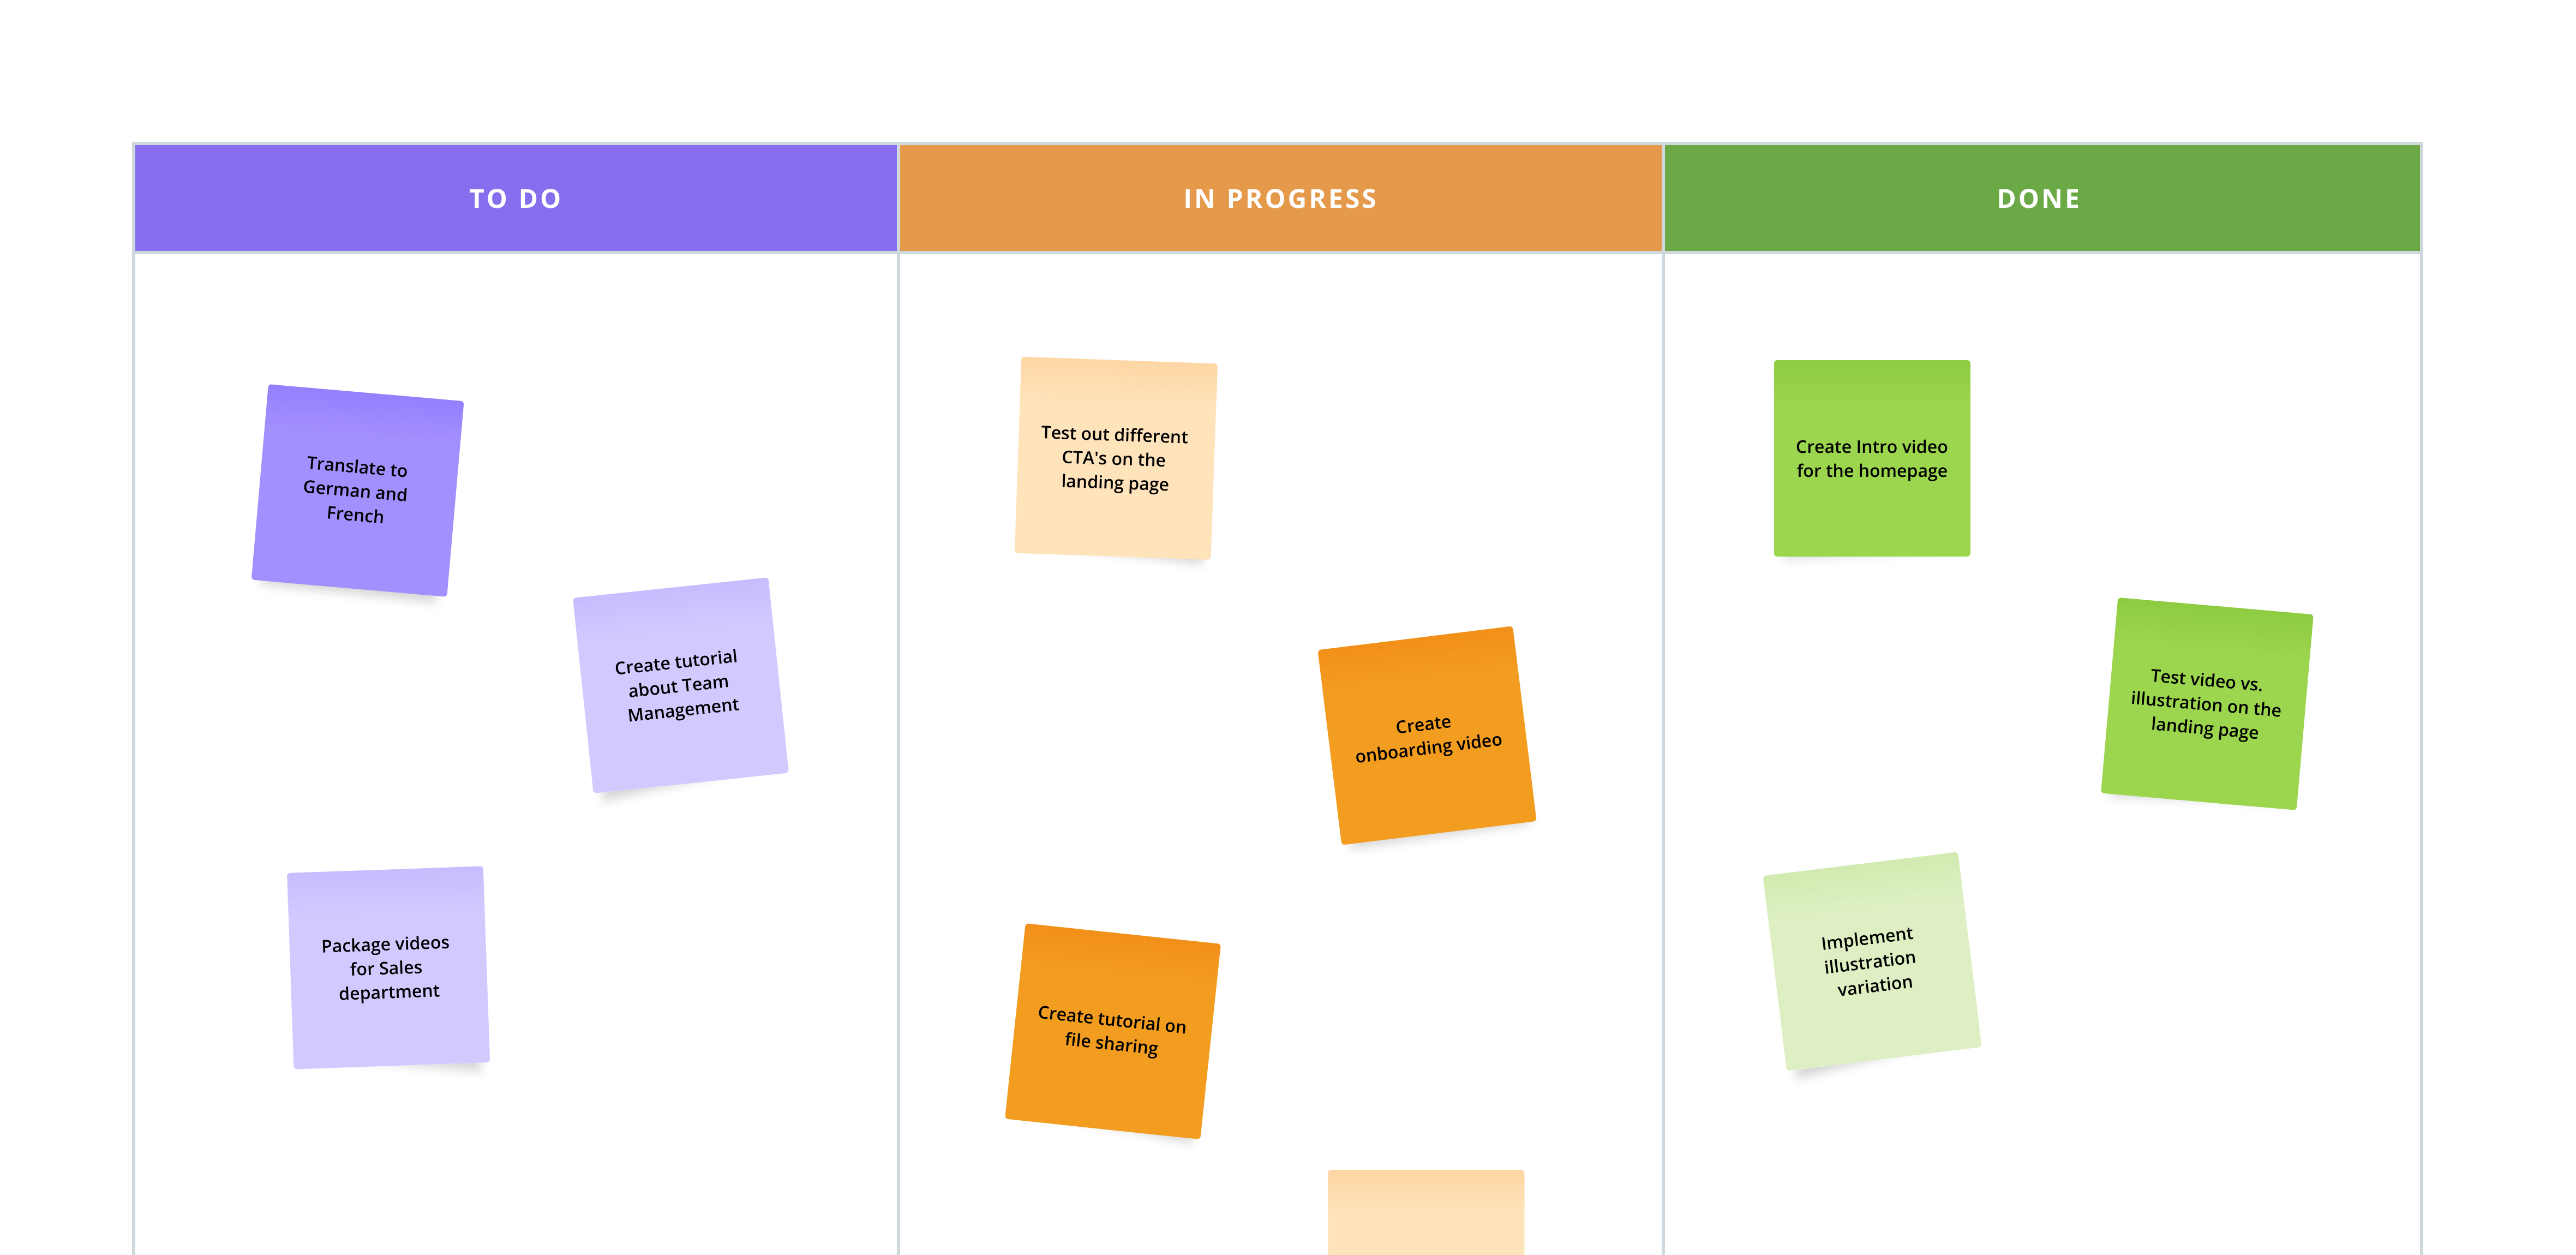 03._Annotations_-_Notes_on_Kanban_Board.png